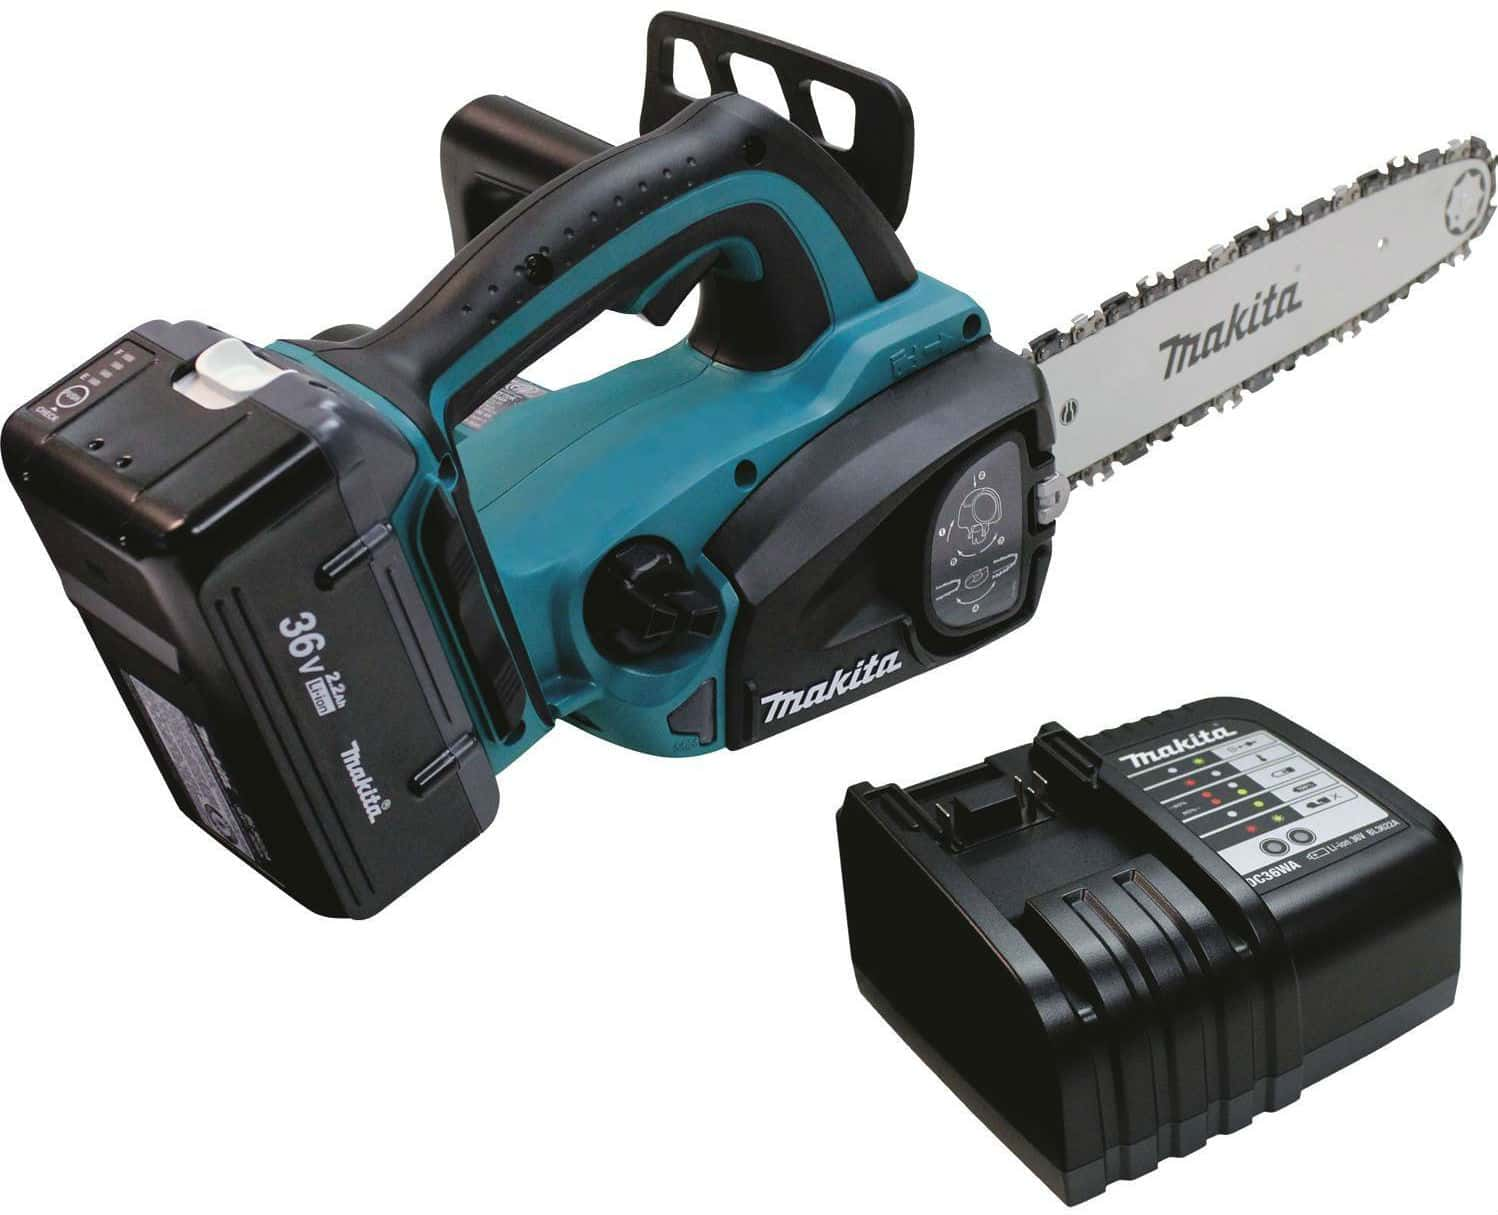 Makita 36V LXT Lithium Ion Cordless chainsaw